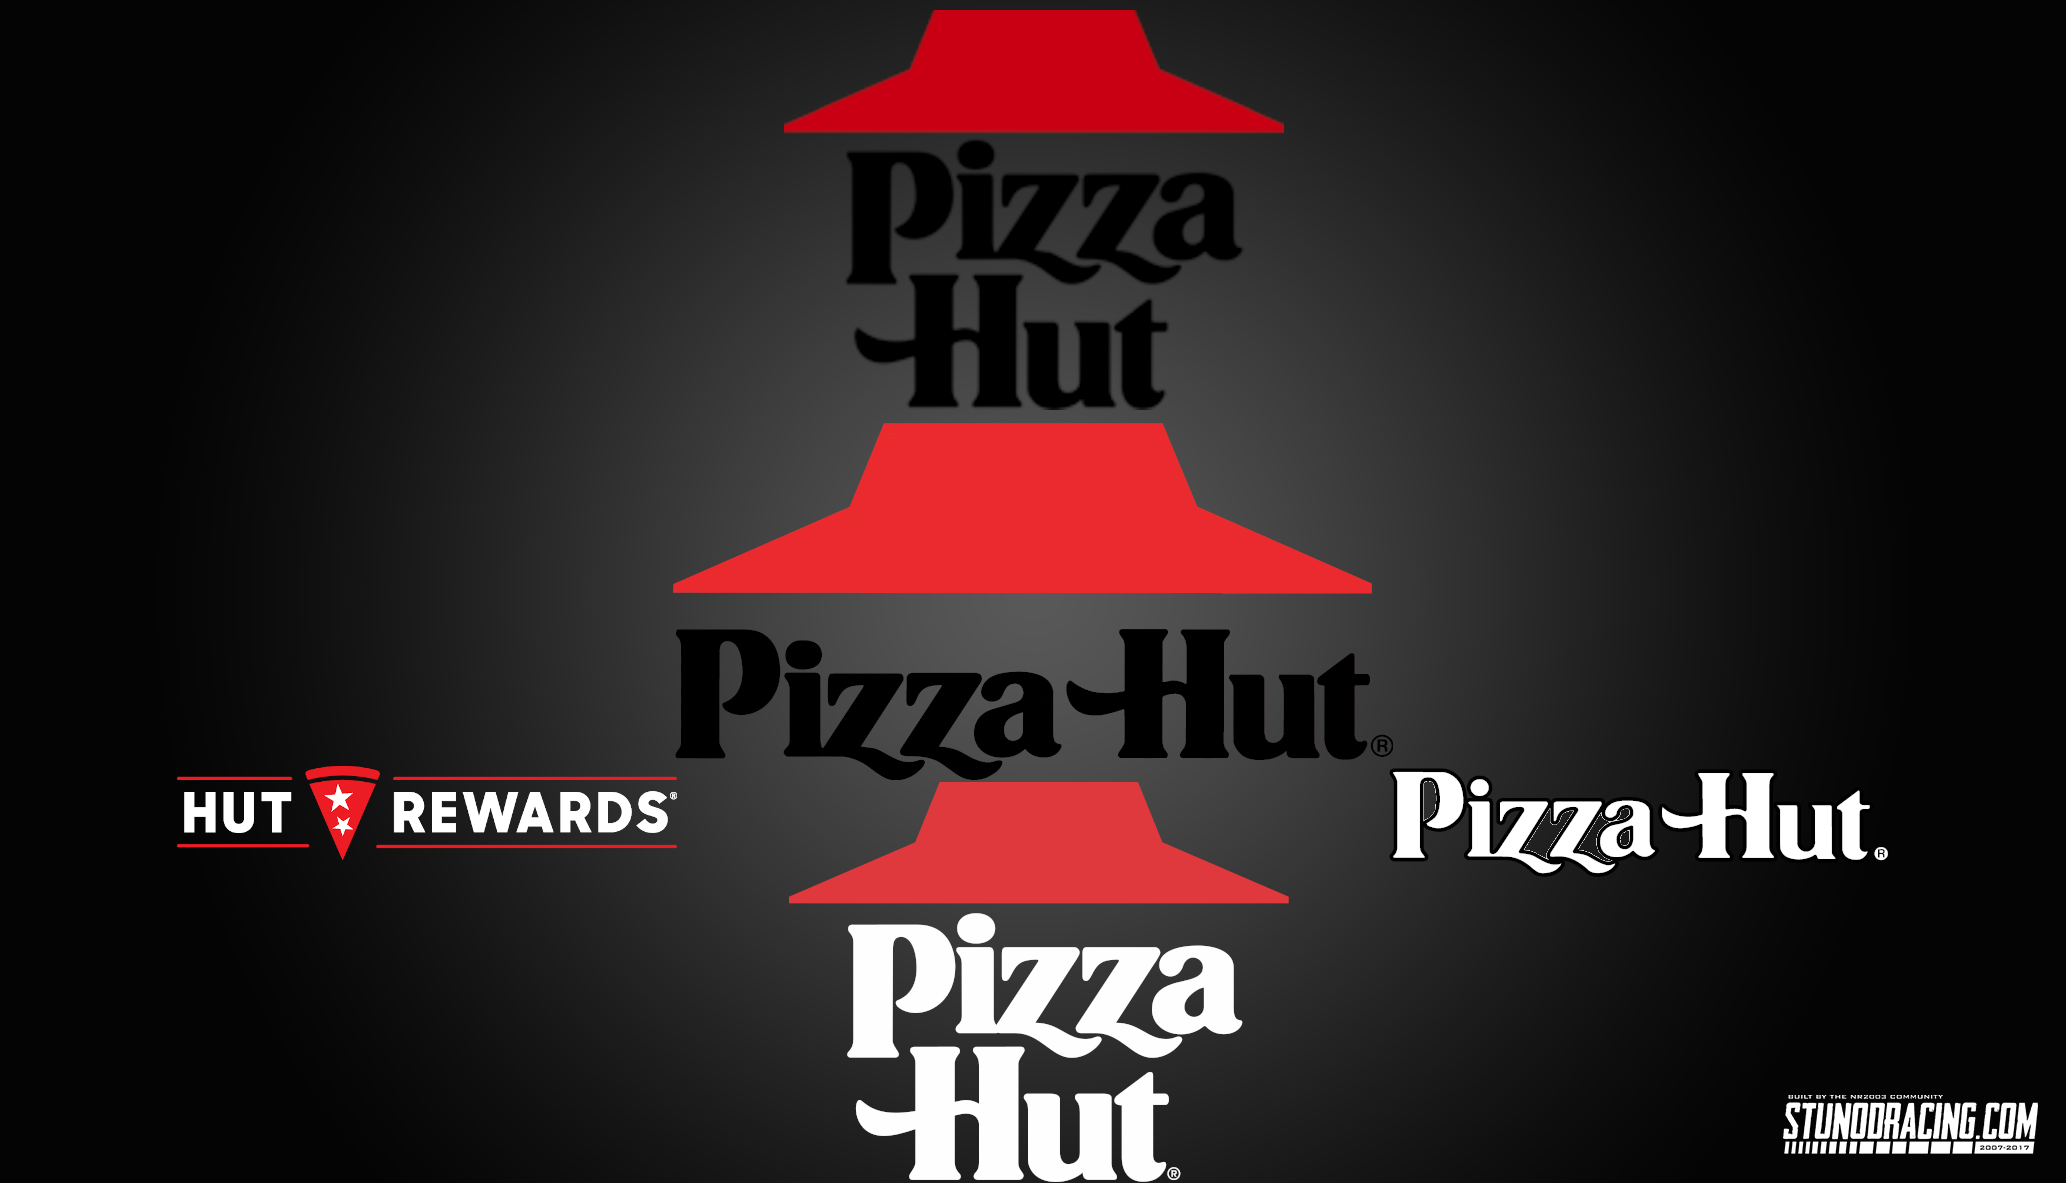 StunodRacing-PizzaHut-Logos.png